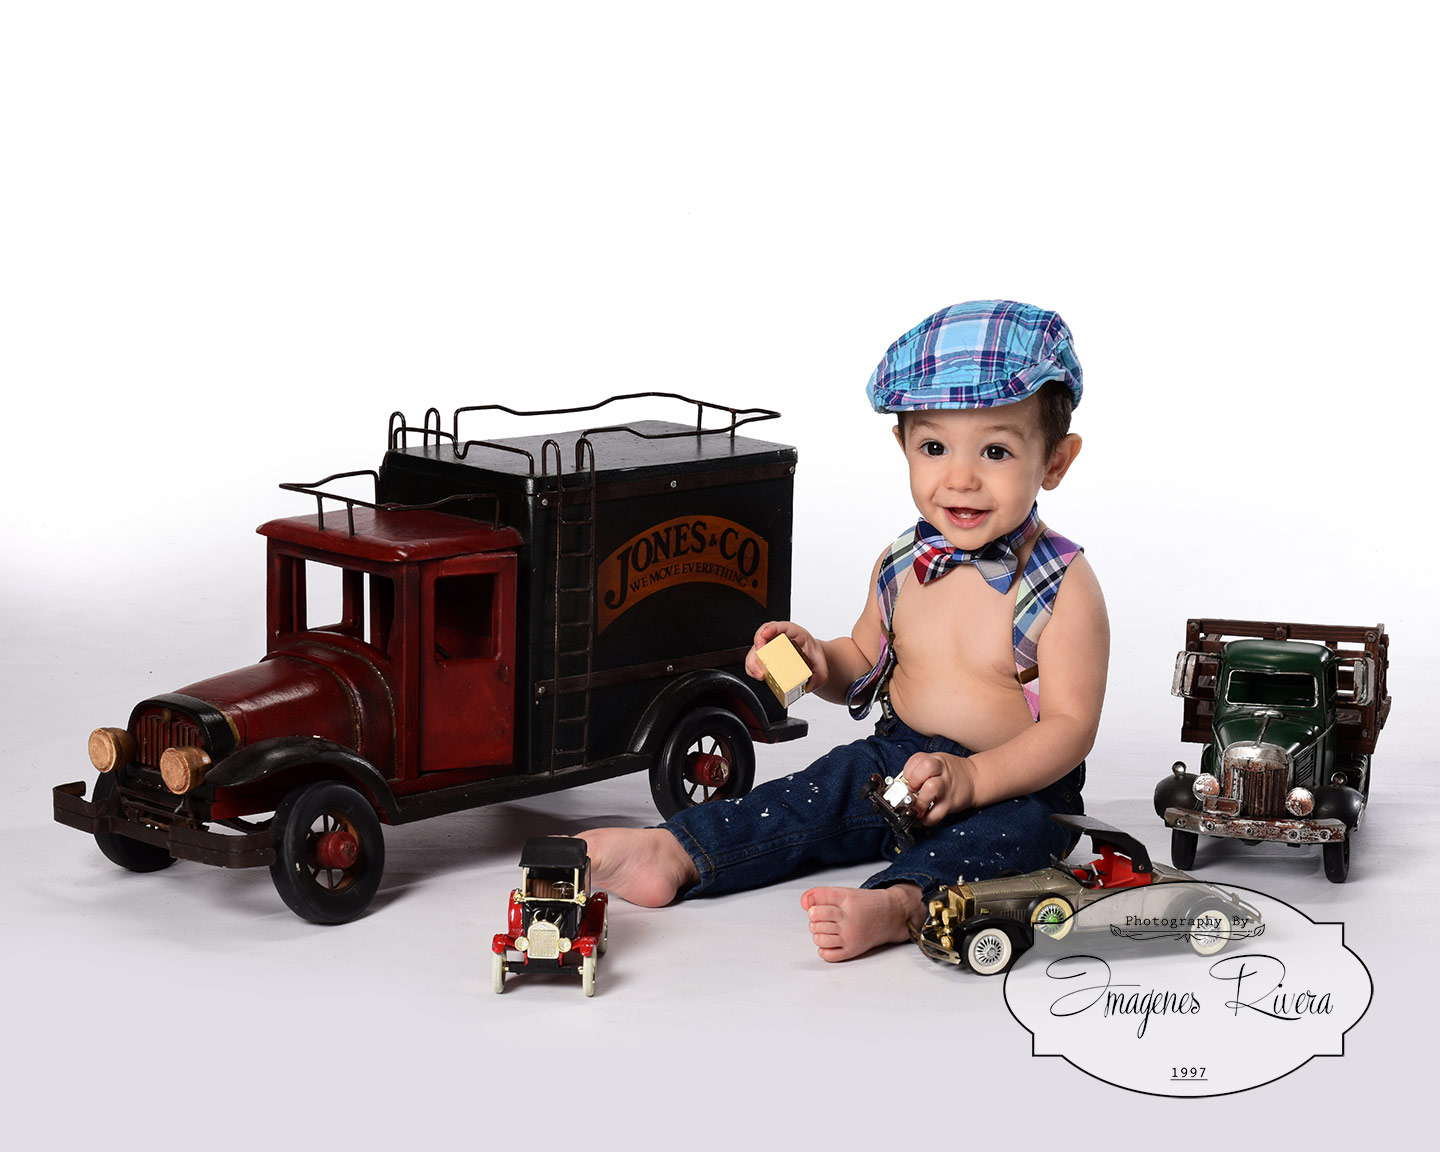 ♥ Liam is eleven months | Children photographer Imagenes Rivera ♥